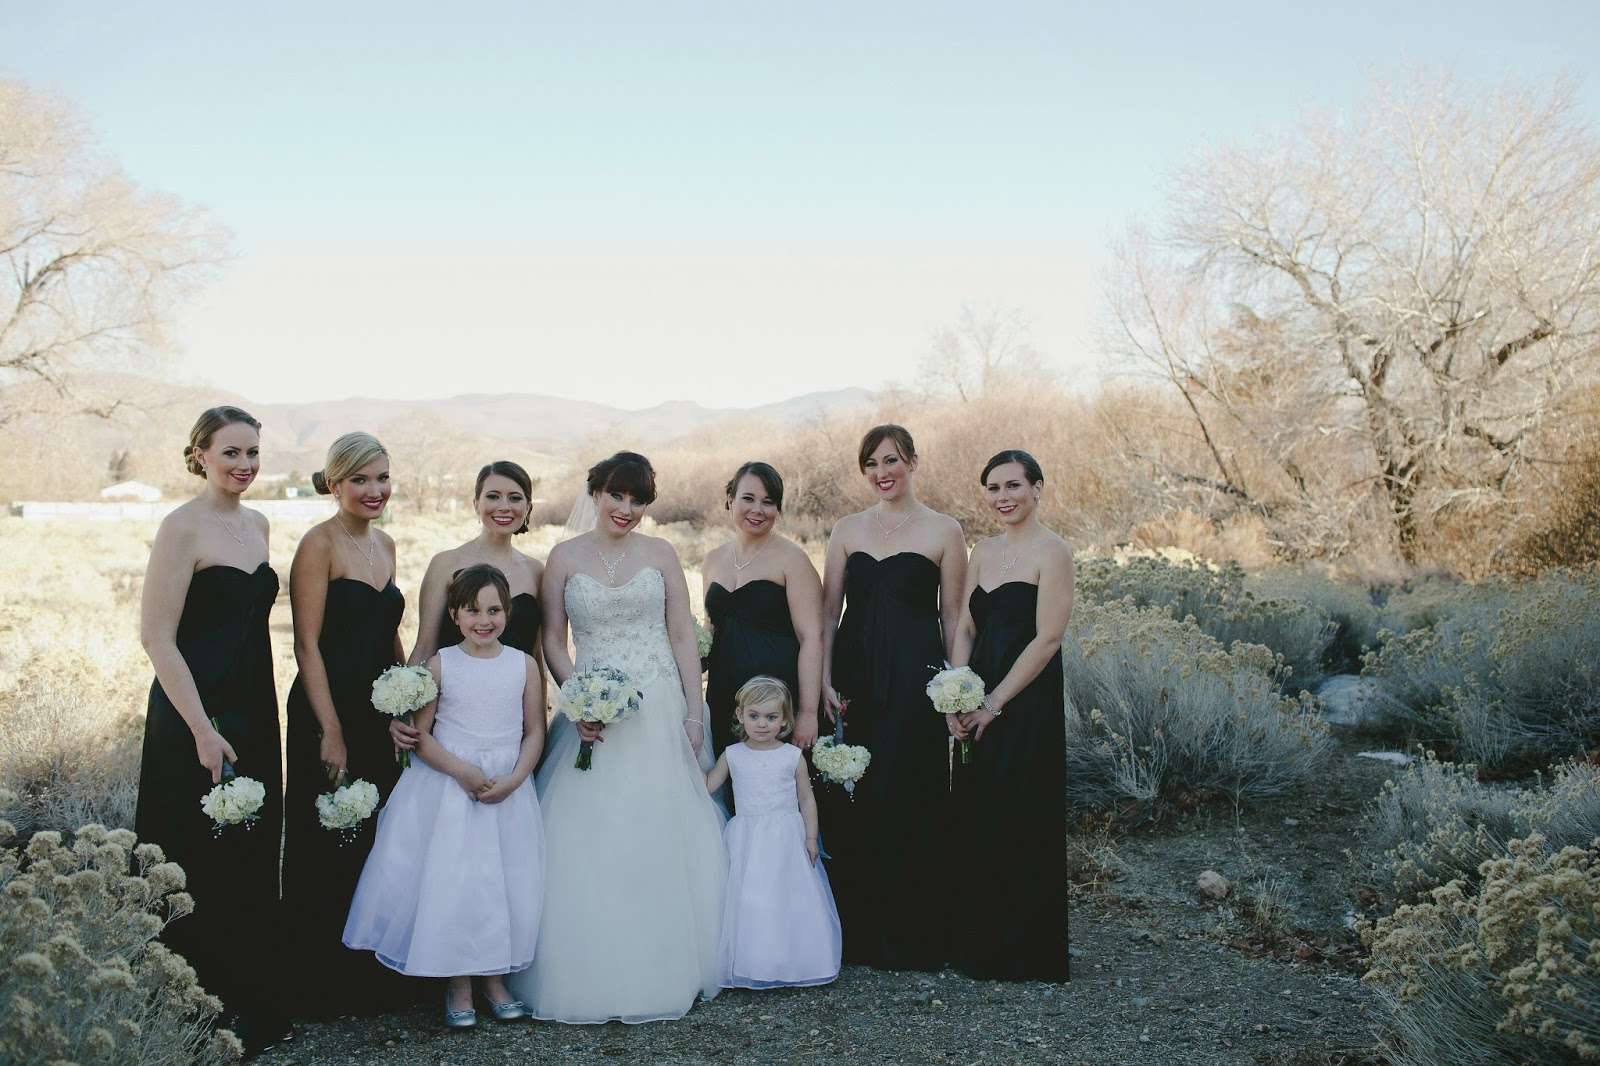 Bartley Ranch Wedding Photo // Bethany Carlson Photography // Take the Cake Event Planning